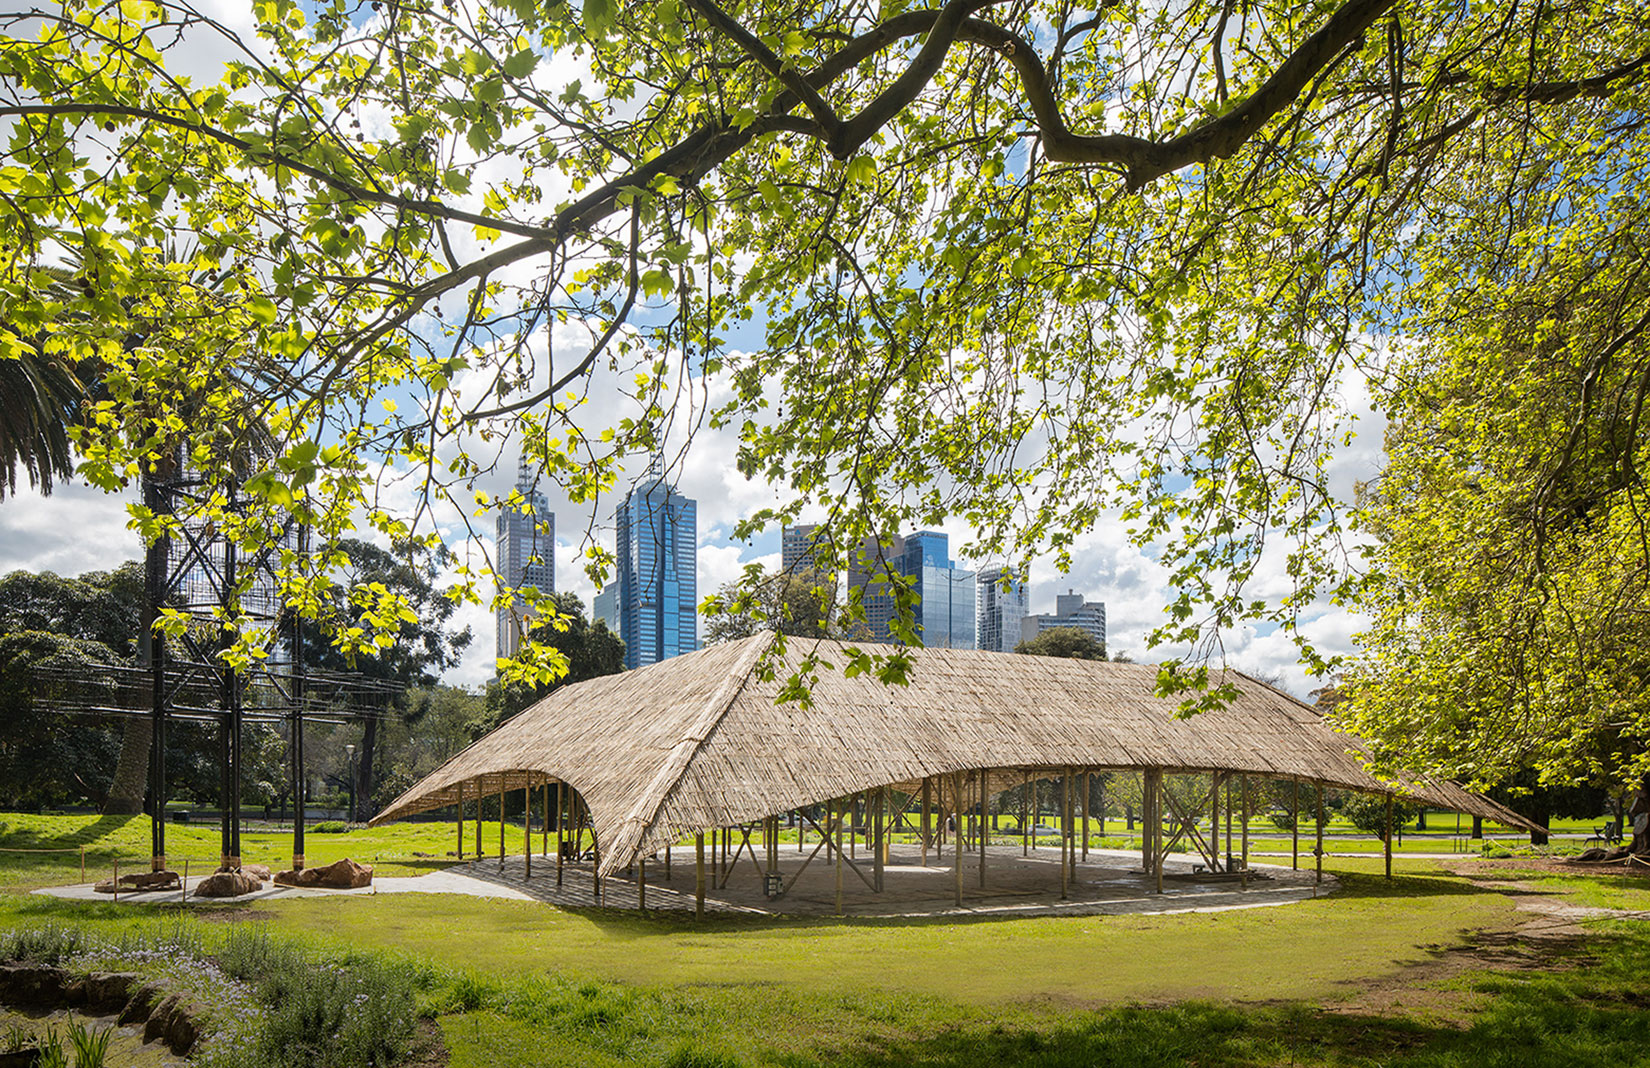 Studio Mumbai S Handcrafted Bamboo Mpavilion Springs Up In